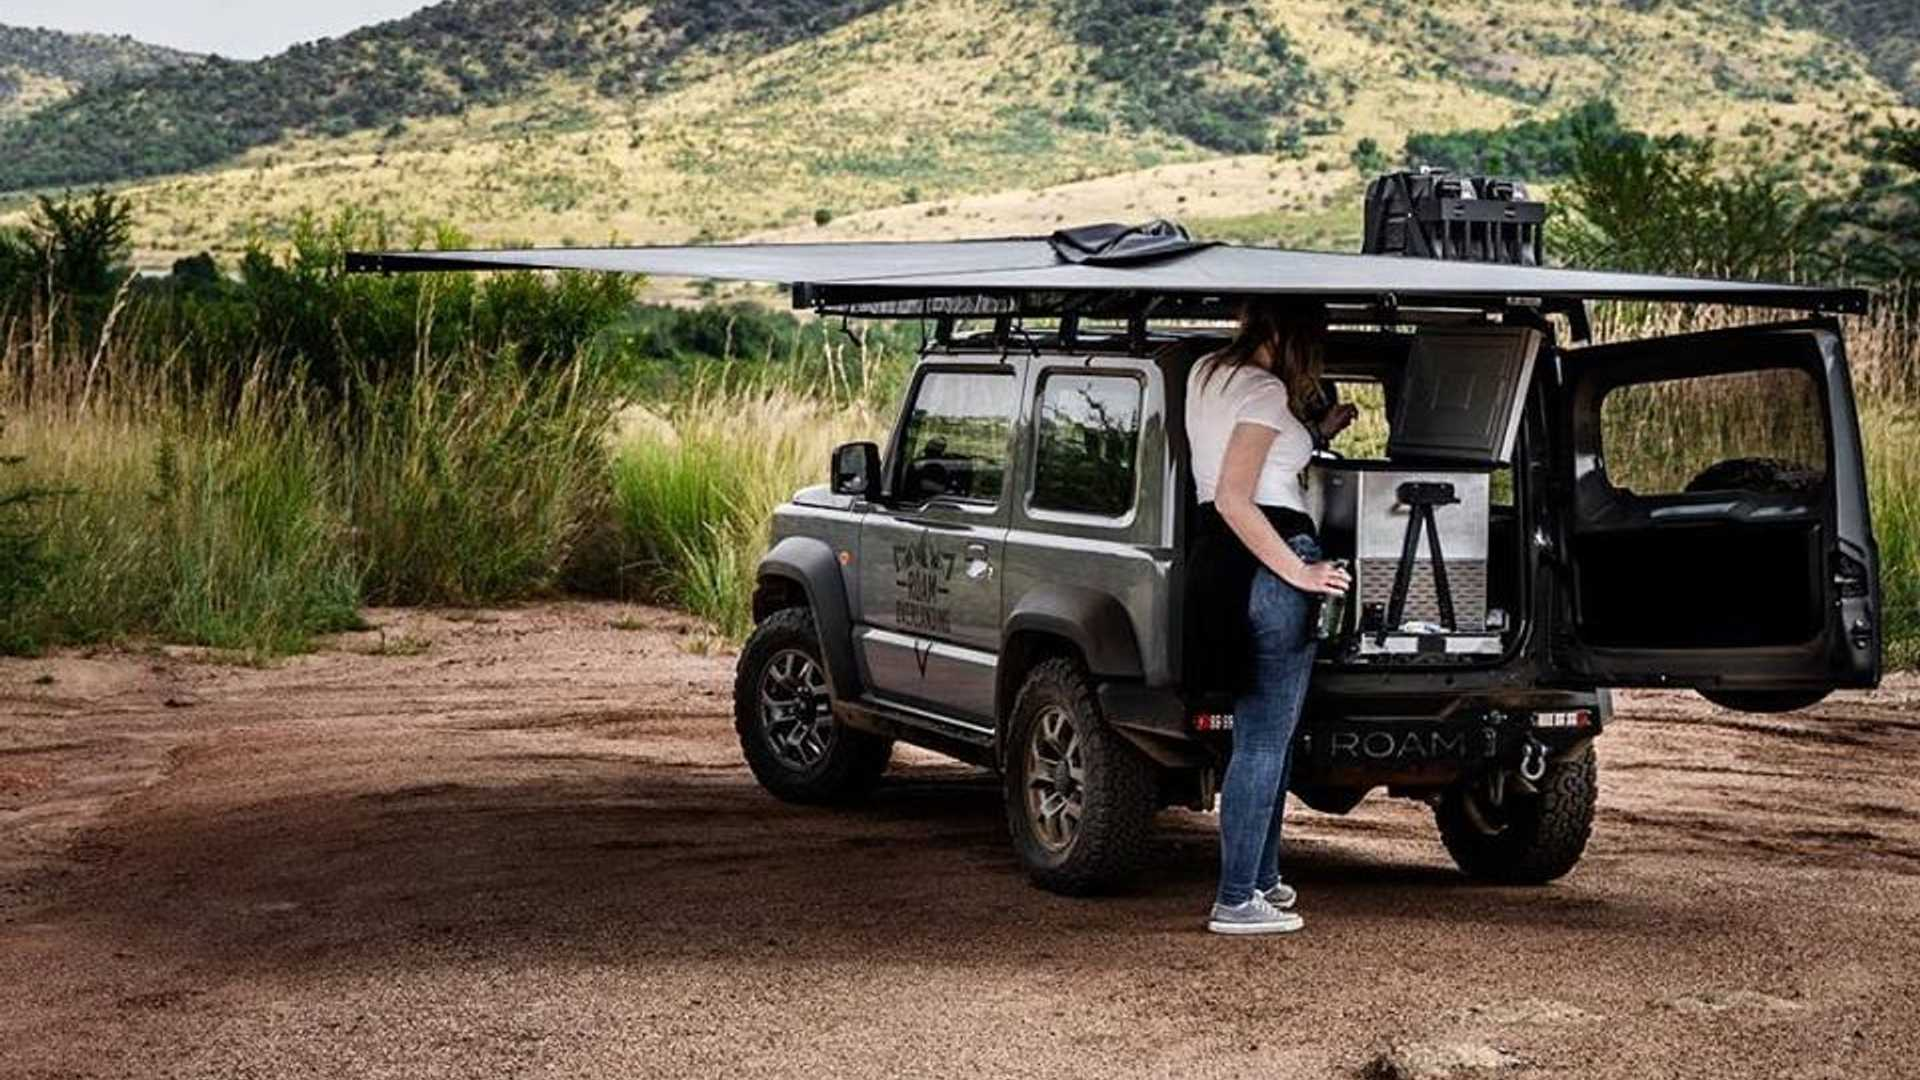 How Can You Make A Suzuki Jimny Cooler? Rooftop Tent